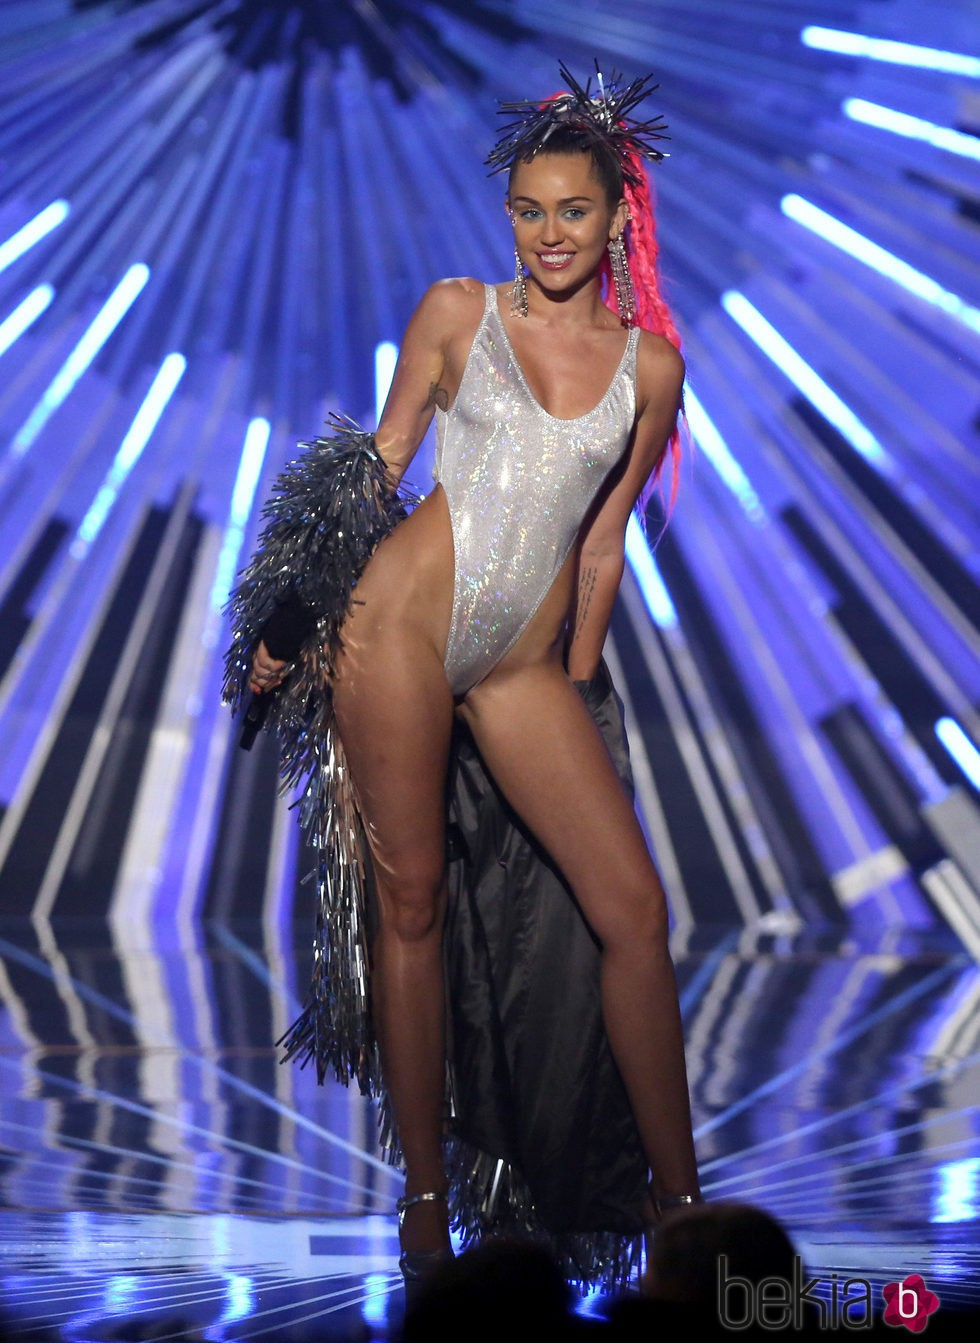 Miley Cyrus con un body plateado en los Video Music Awards 2015